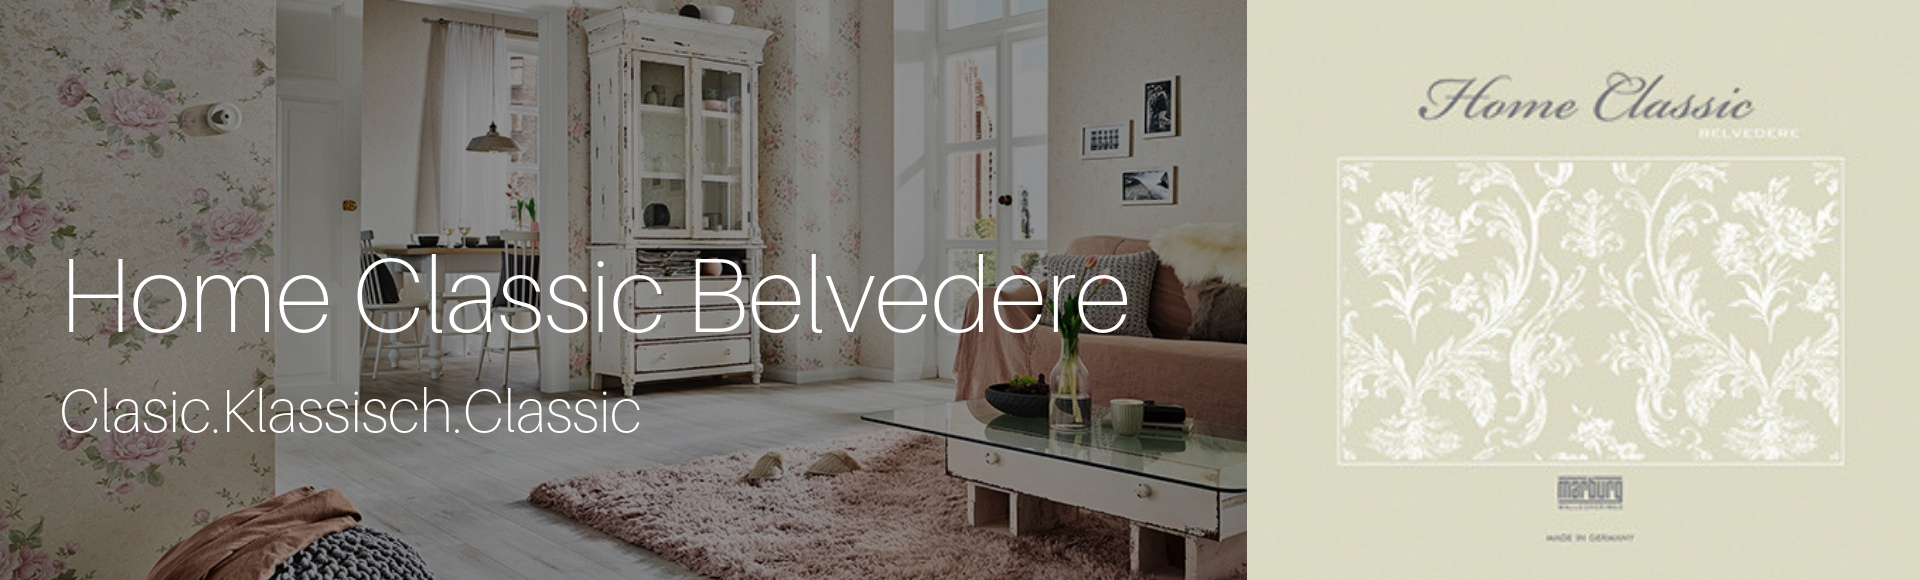 Tapet - Home Classic Belvedere